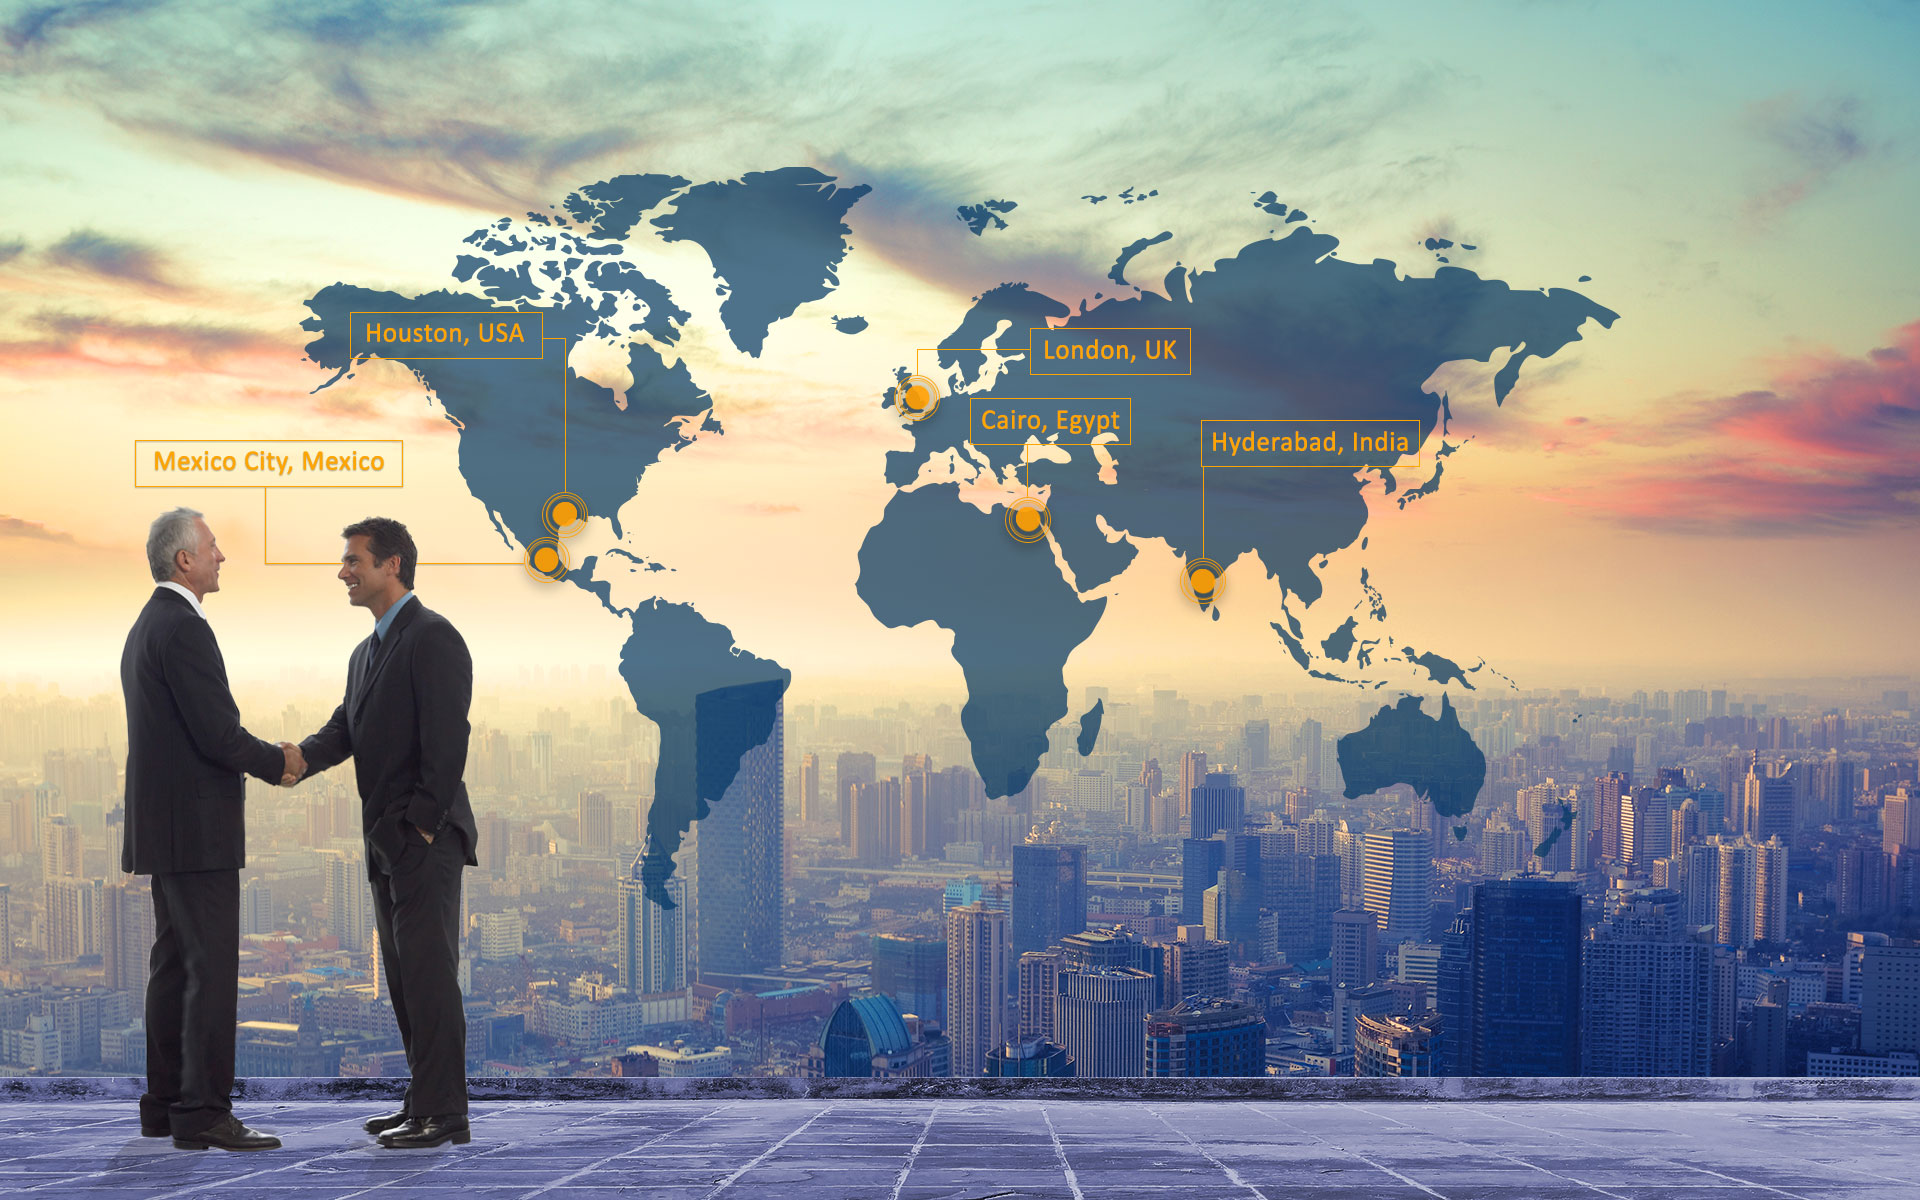 To be your Global Partner, delivering World's Best Service ...